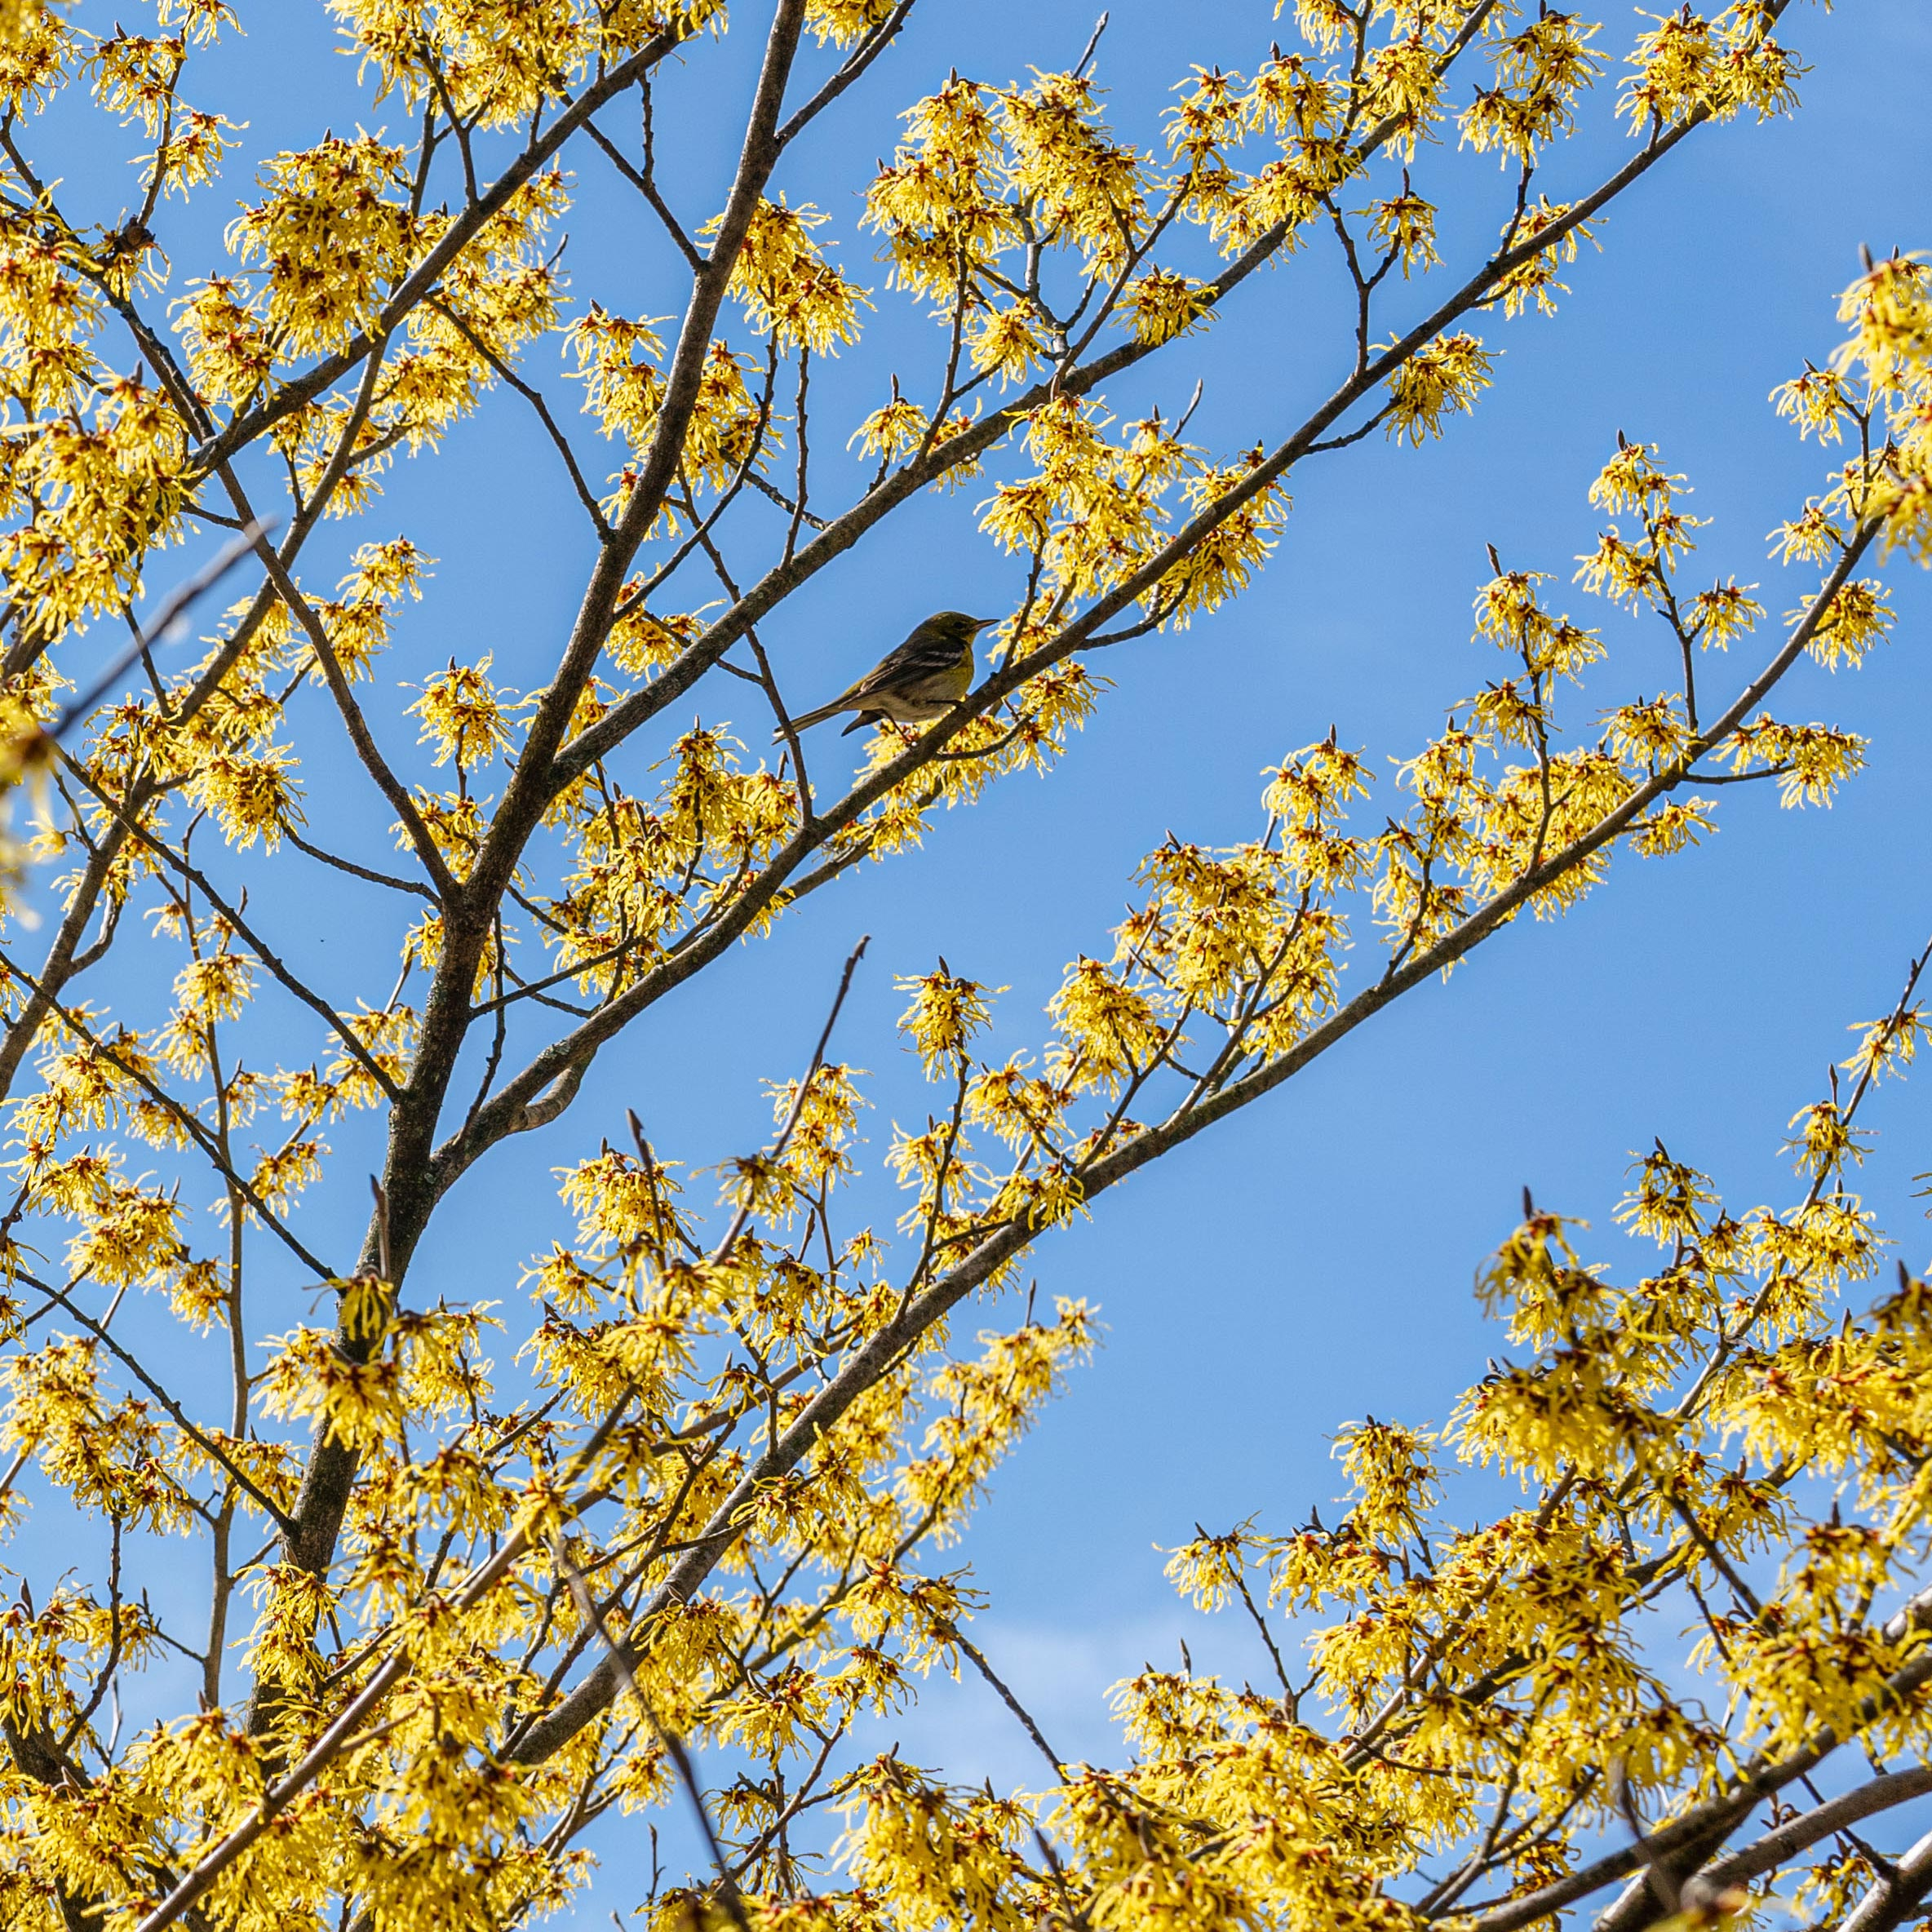 A birst perched amid striking yellow witch-hazels.